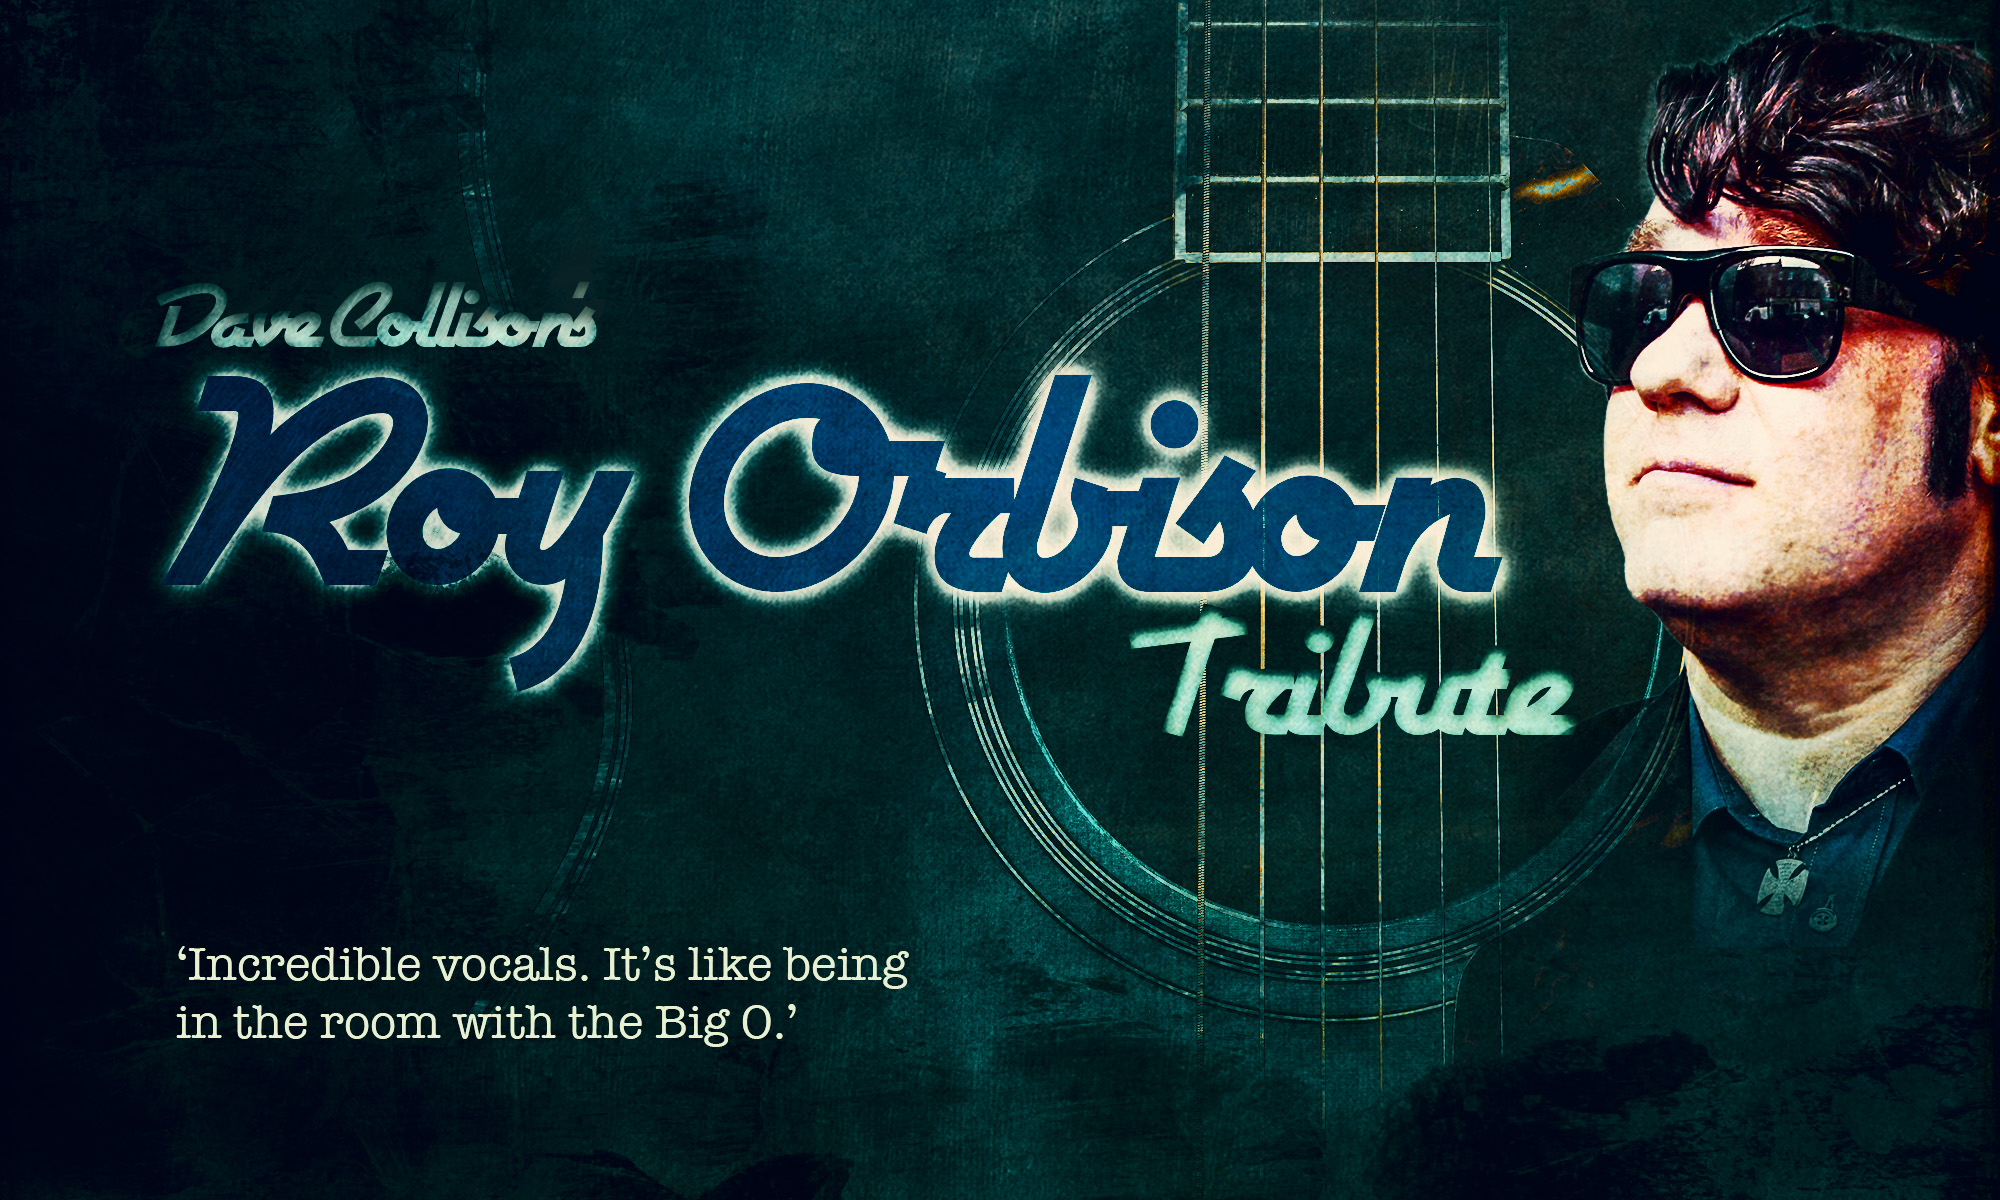 Dave Collison - Roy Orbison Tribute